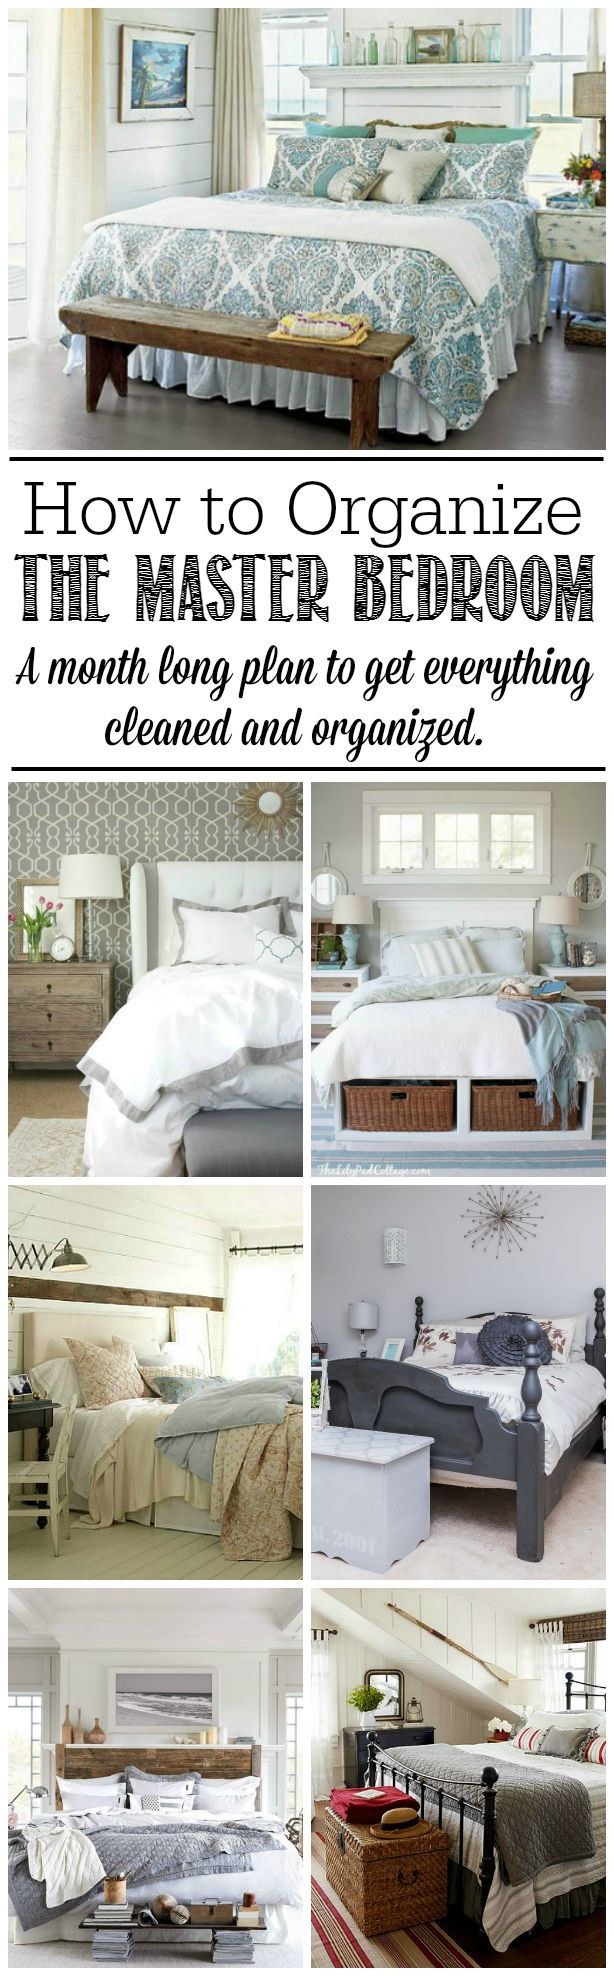 Organize Bedroom best 25+ bedroom organization tips ideas on pinterest | closet